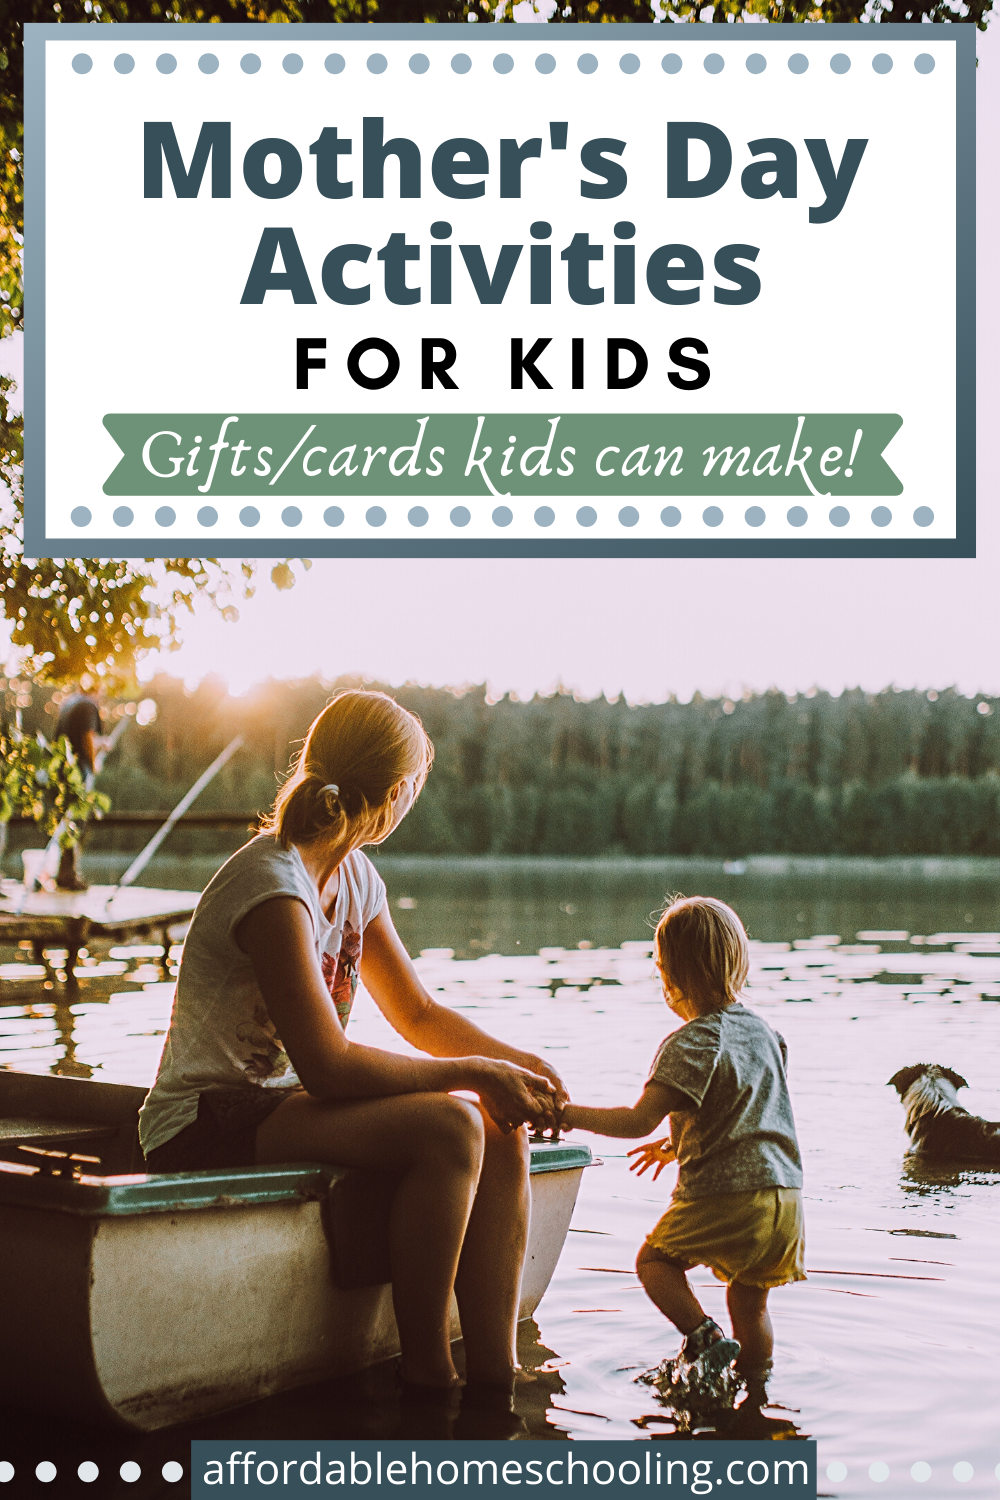 Let kids celebrate mom with one or more of these creative Mother's Day activities for kids. Ideas for gifts, cards, and pampering are included!